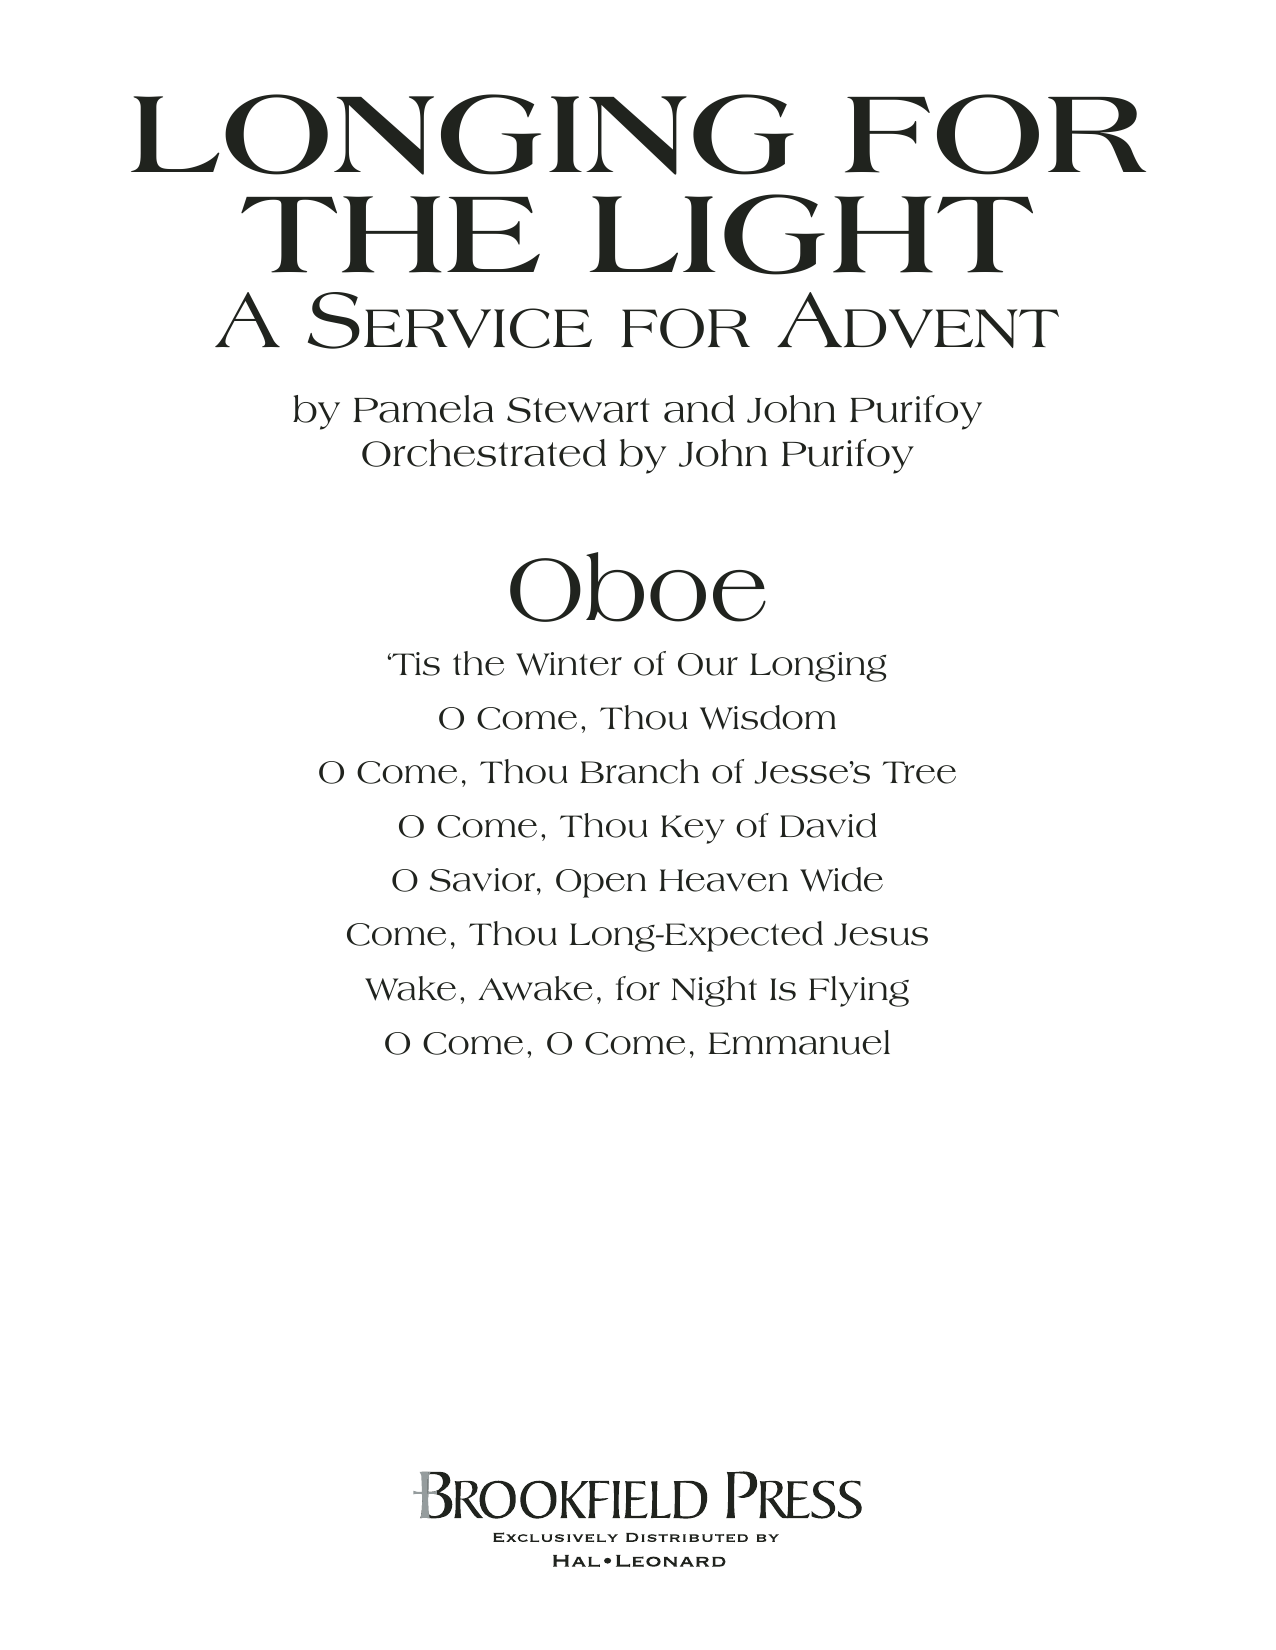 Longing For The Light (A Service For Advent) - Oboe Sheet Music